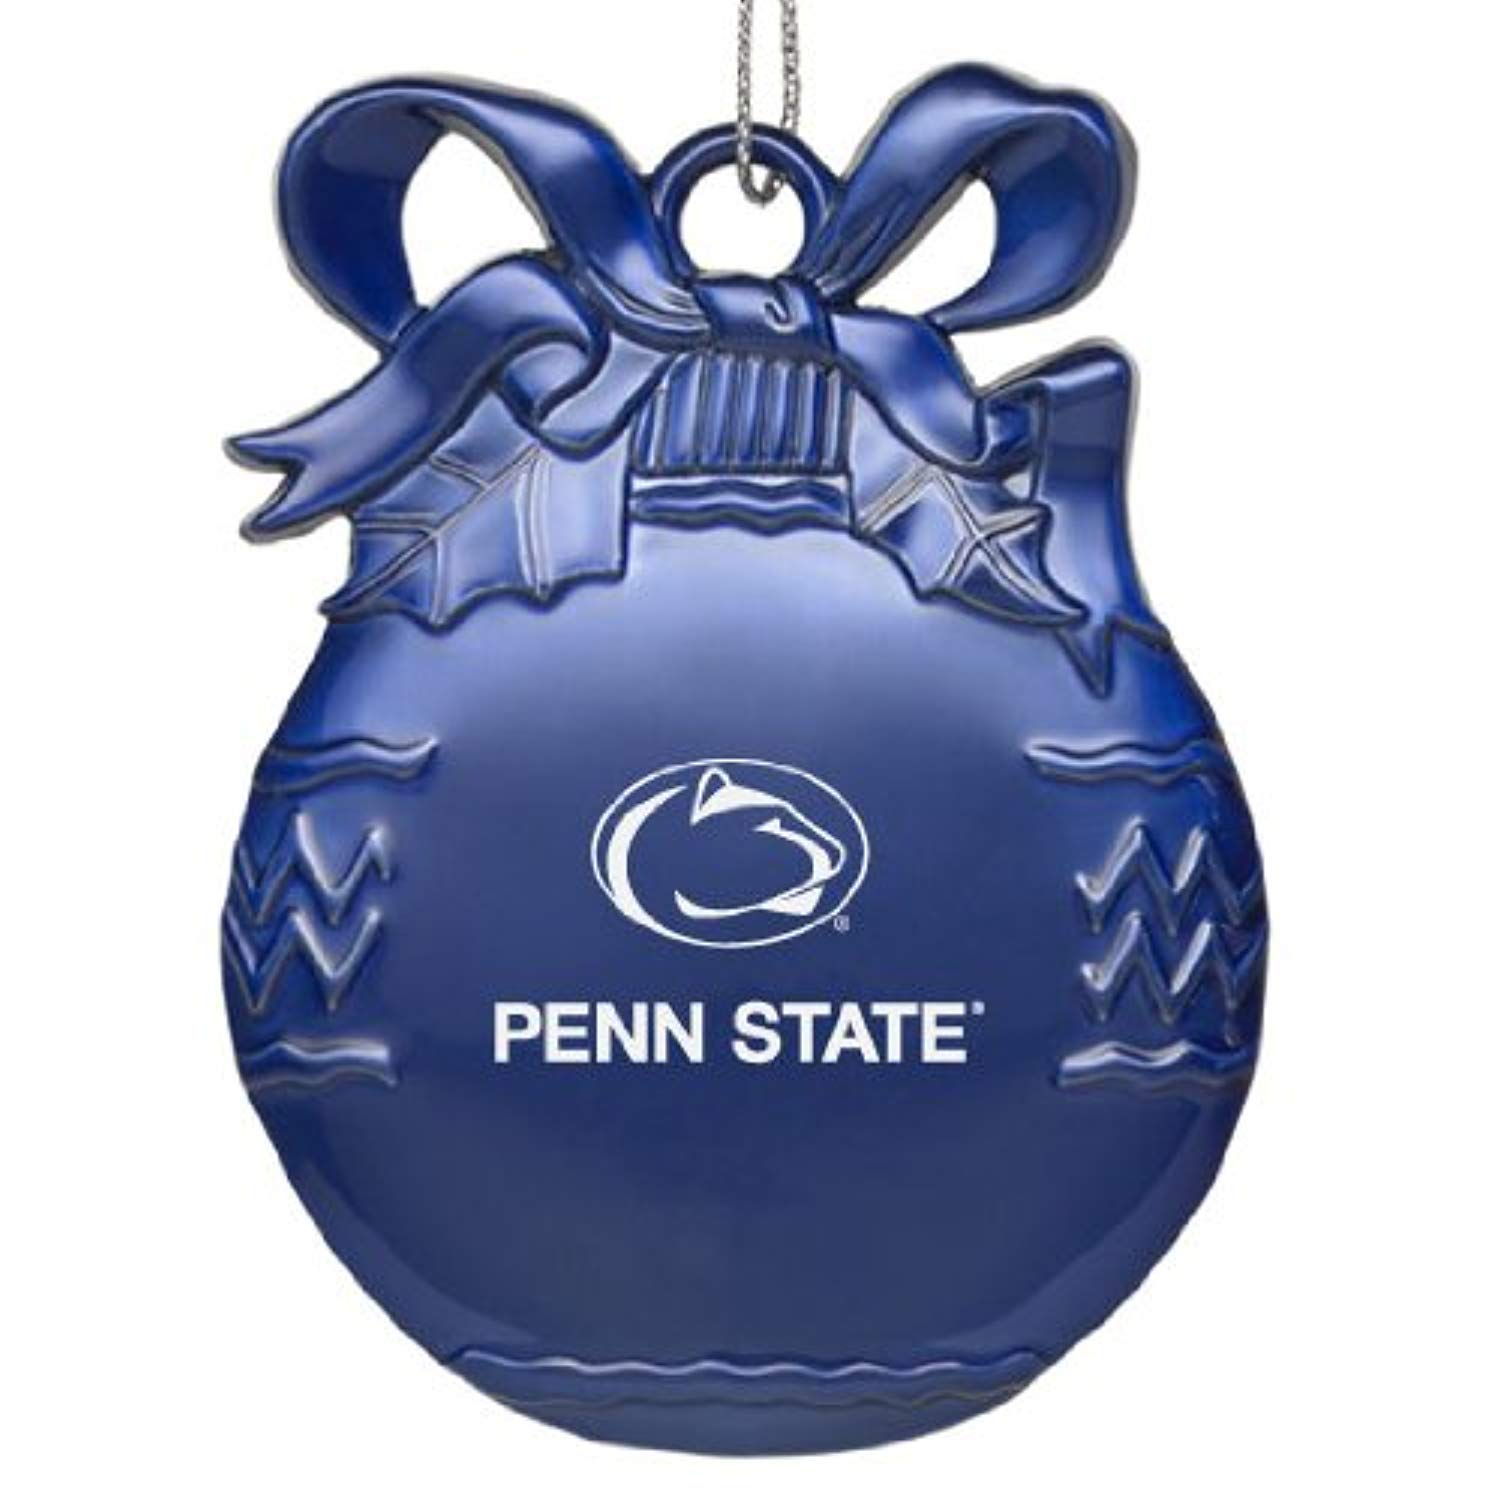 Blue Pewter Christmas Tree Ornament LXG Penn State University